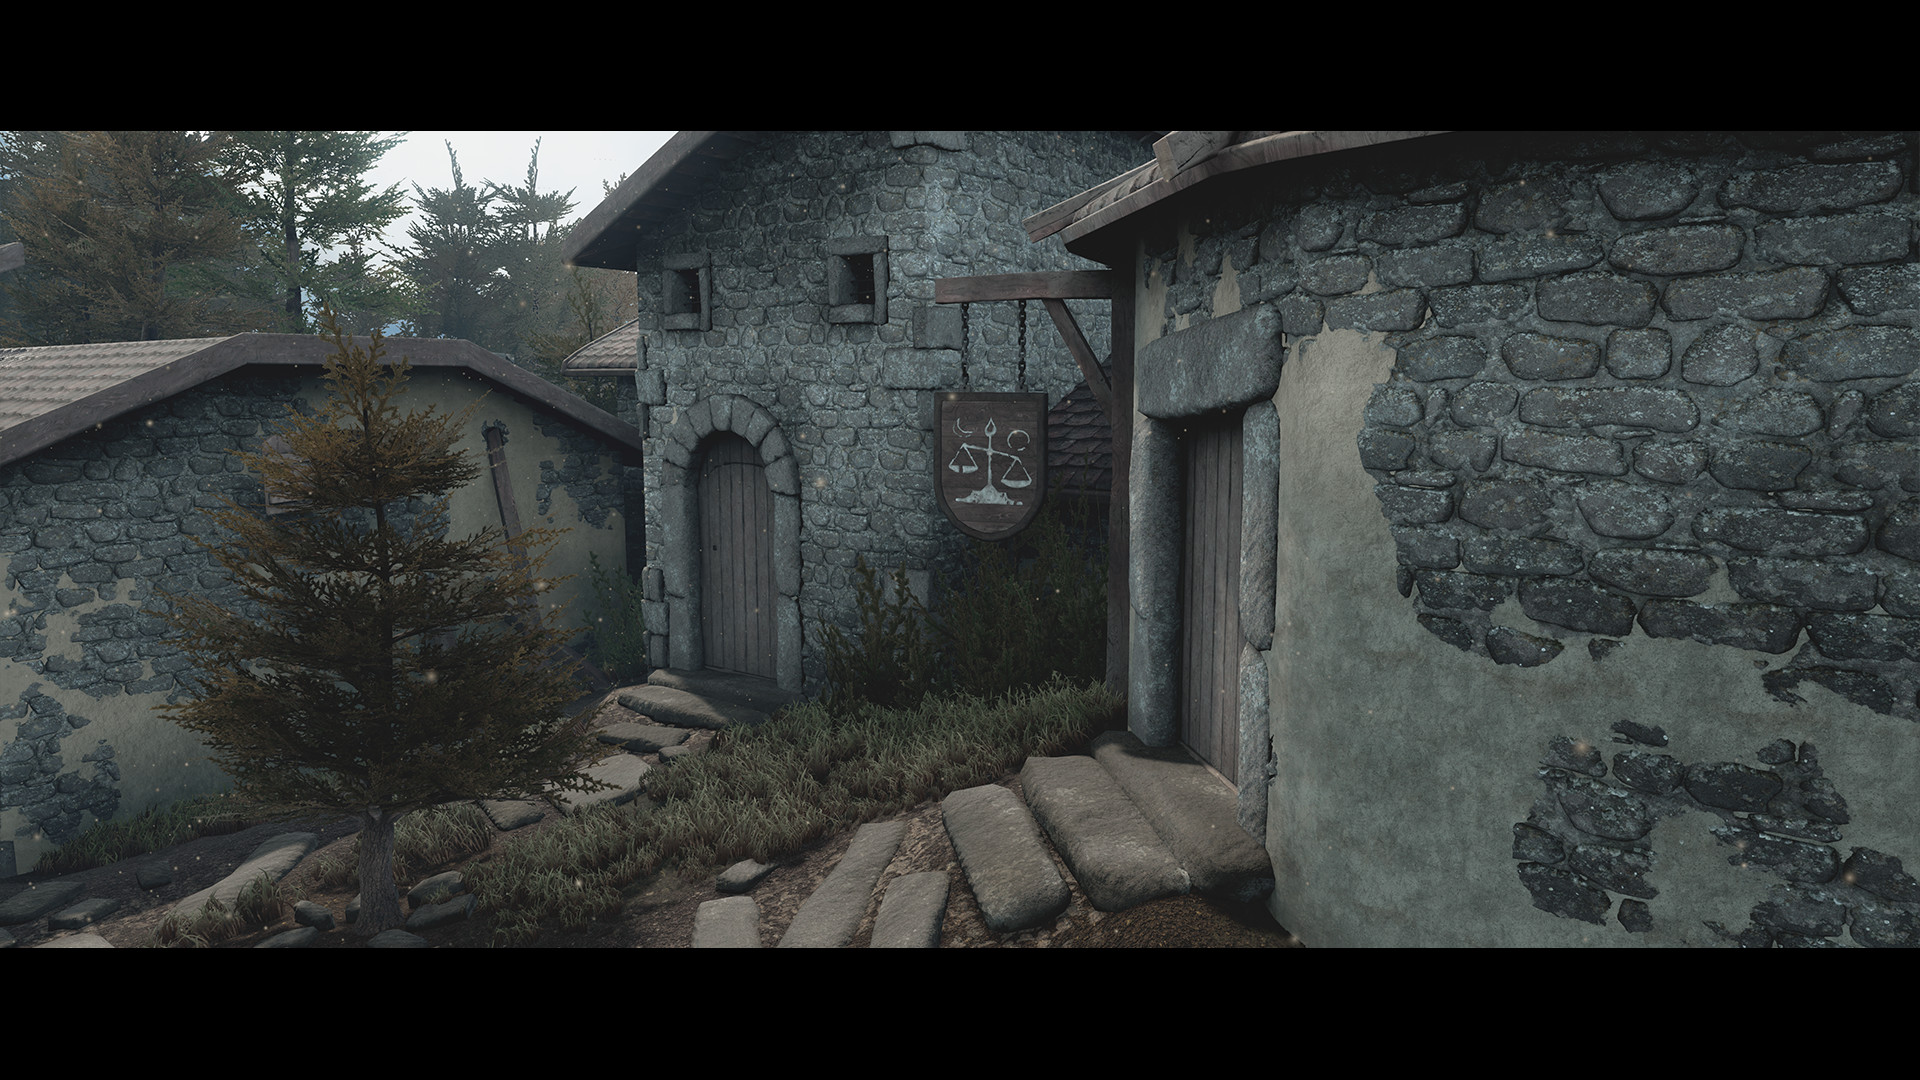 Marco maria rossi store oldvillage screenshot 1